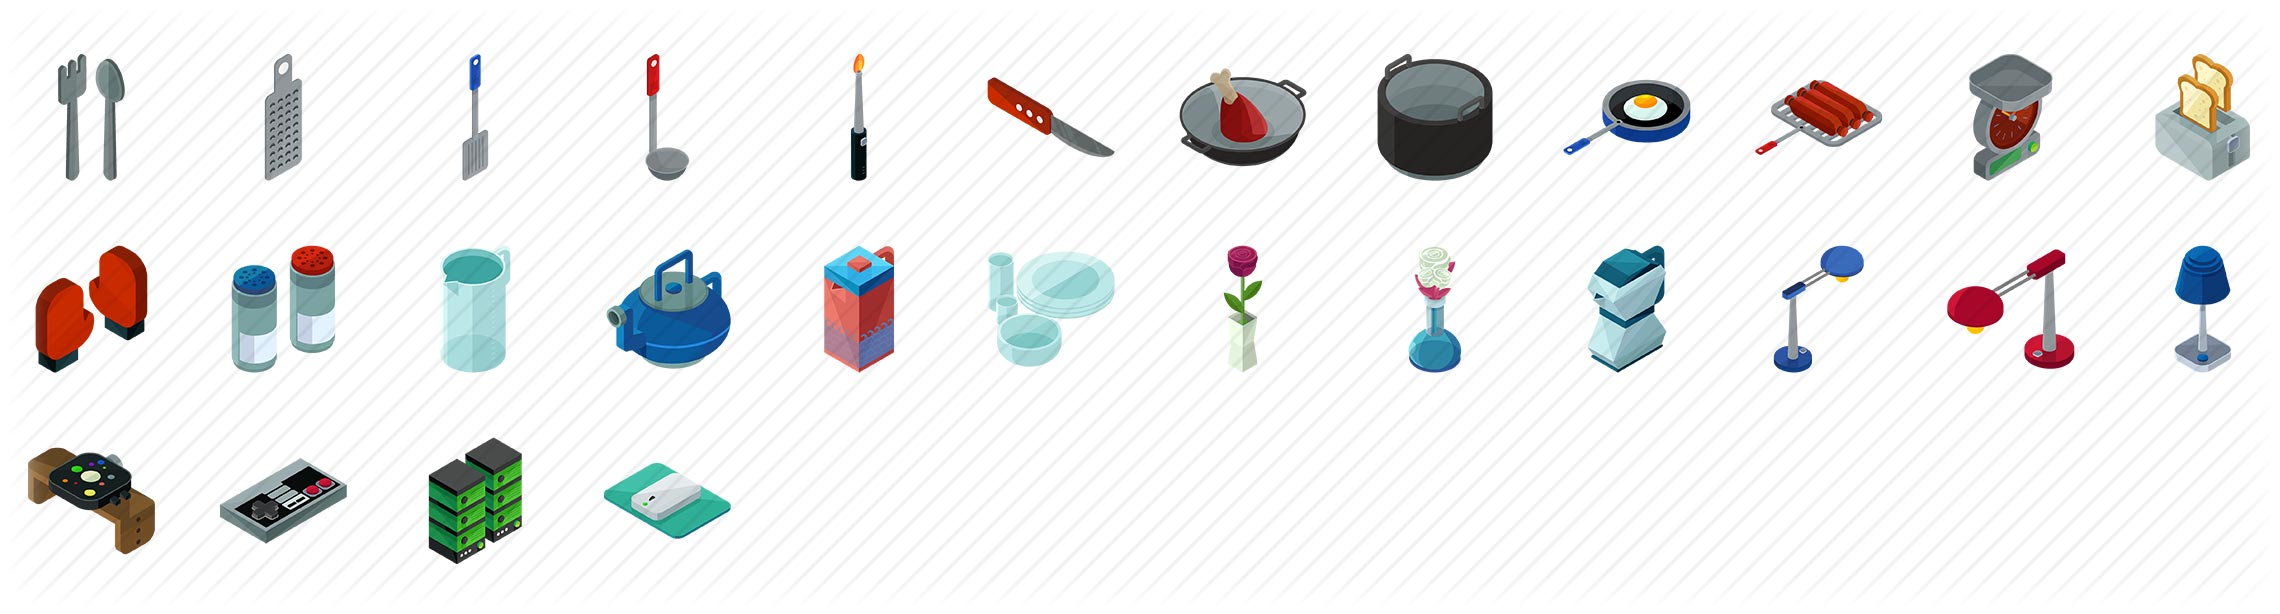 Home Accessories Isometric Icons